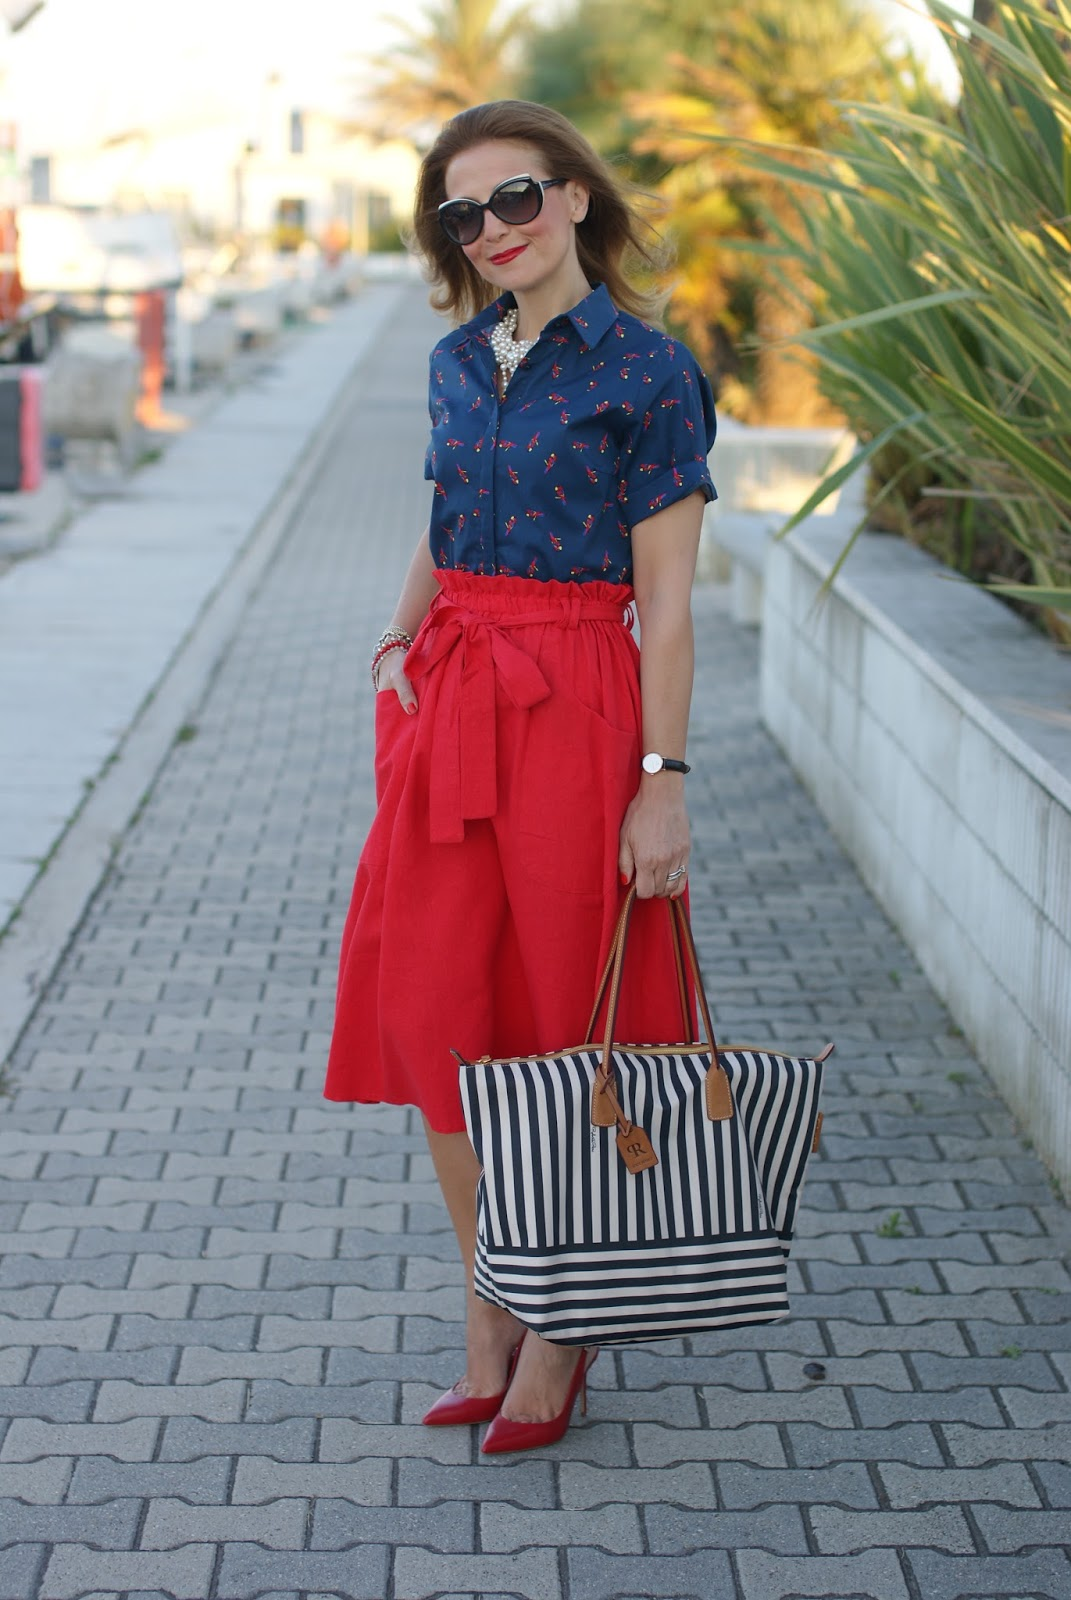 Fashion and Cookies Vale wearing a Robertina by Roberta Pieri striped bag on her fashion blog